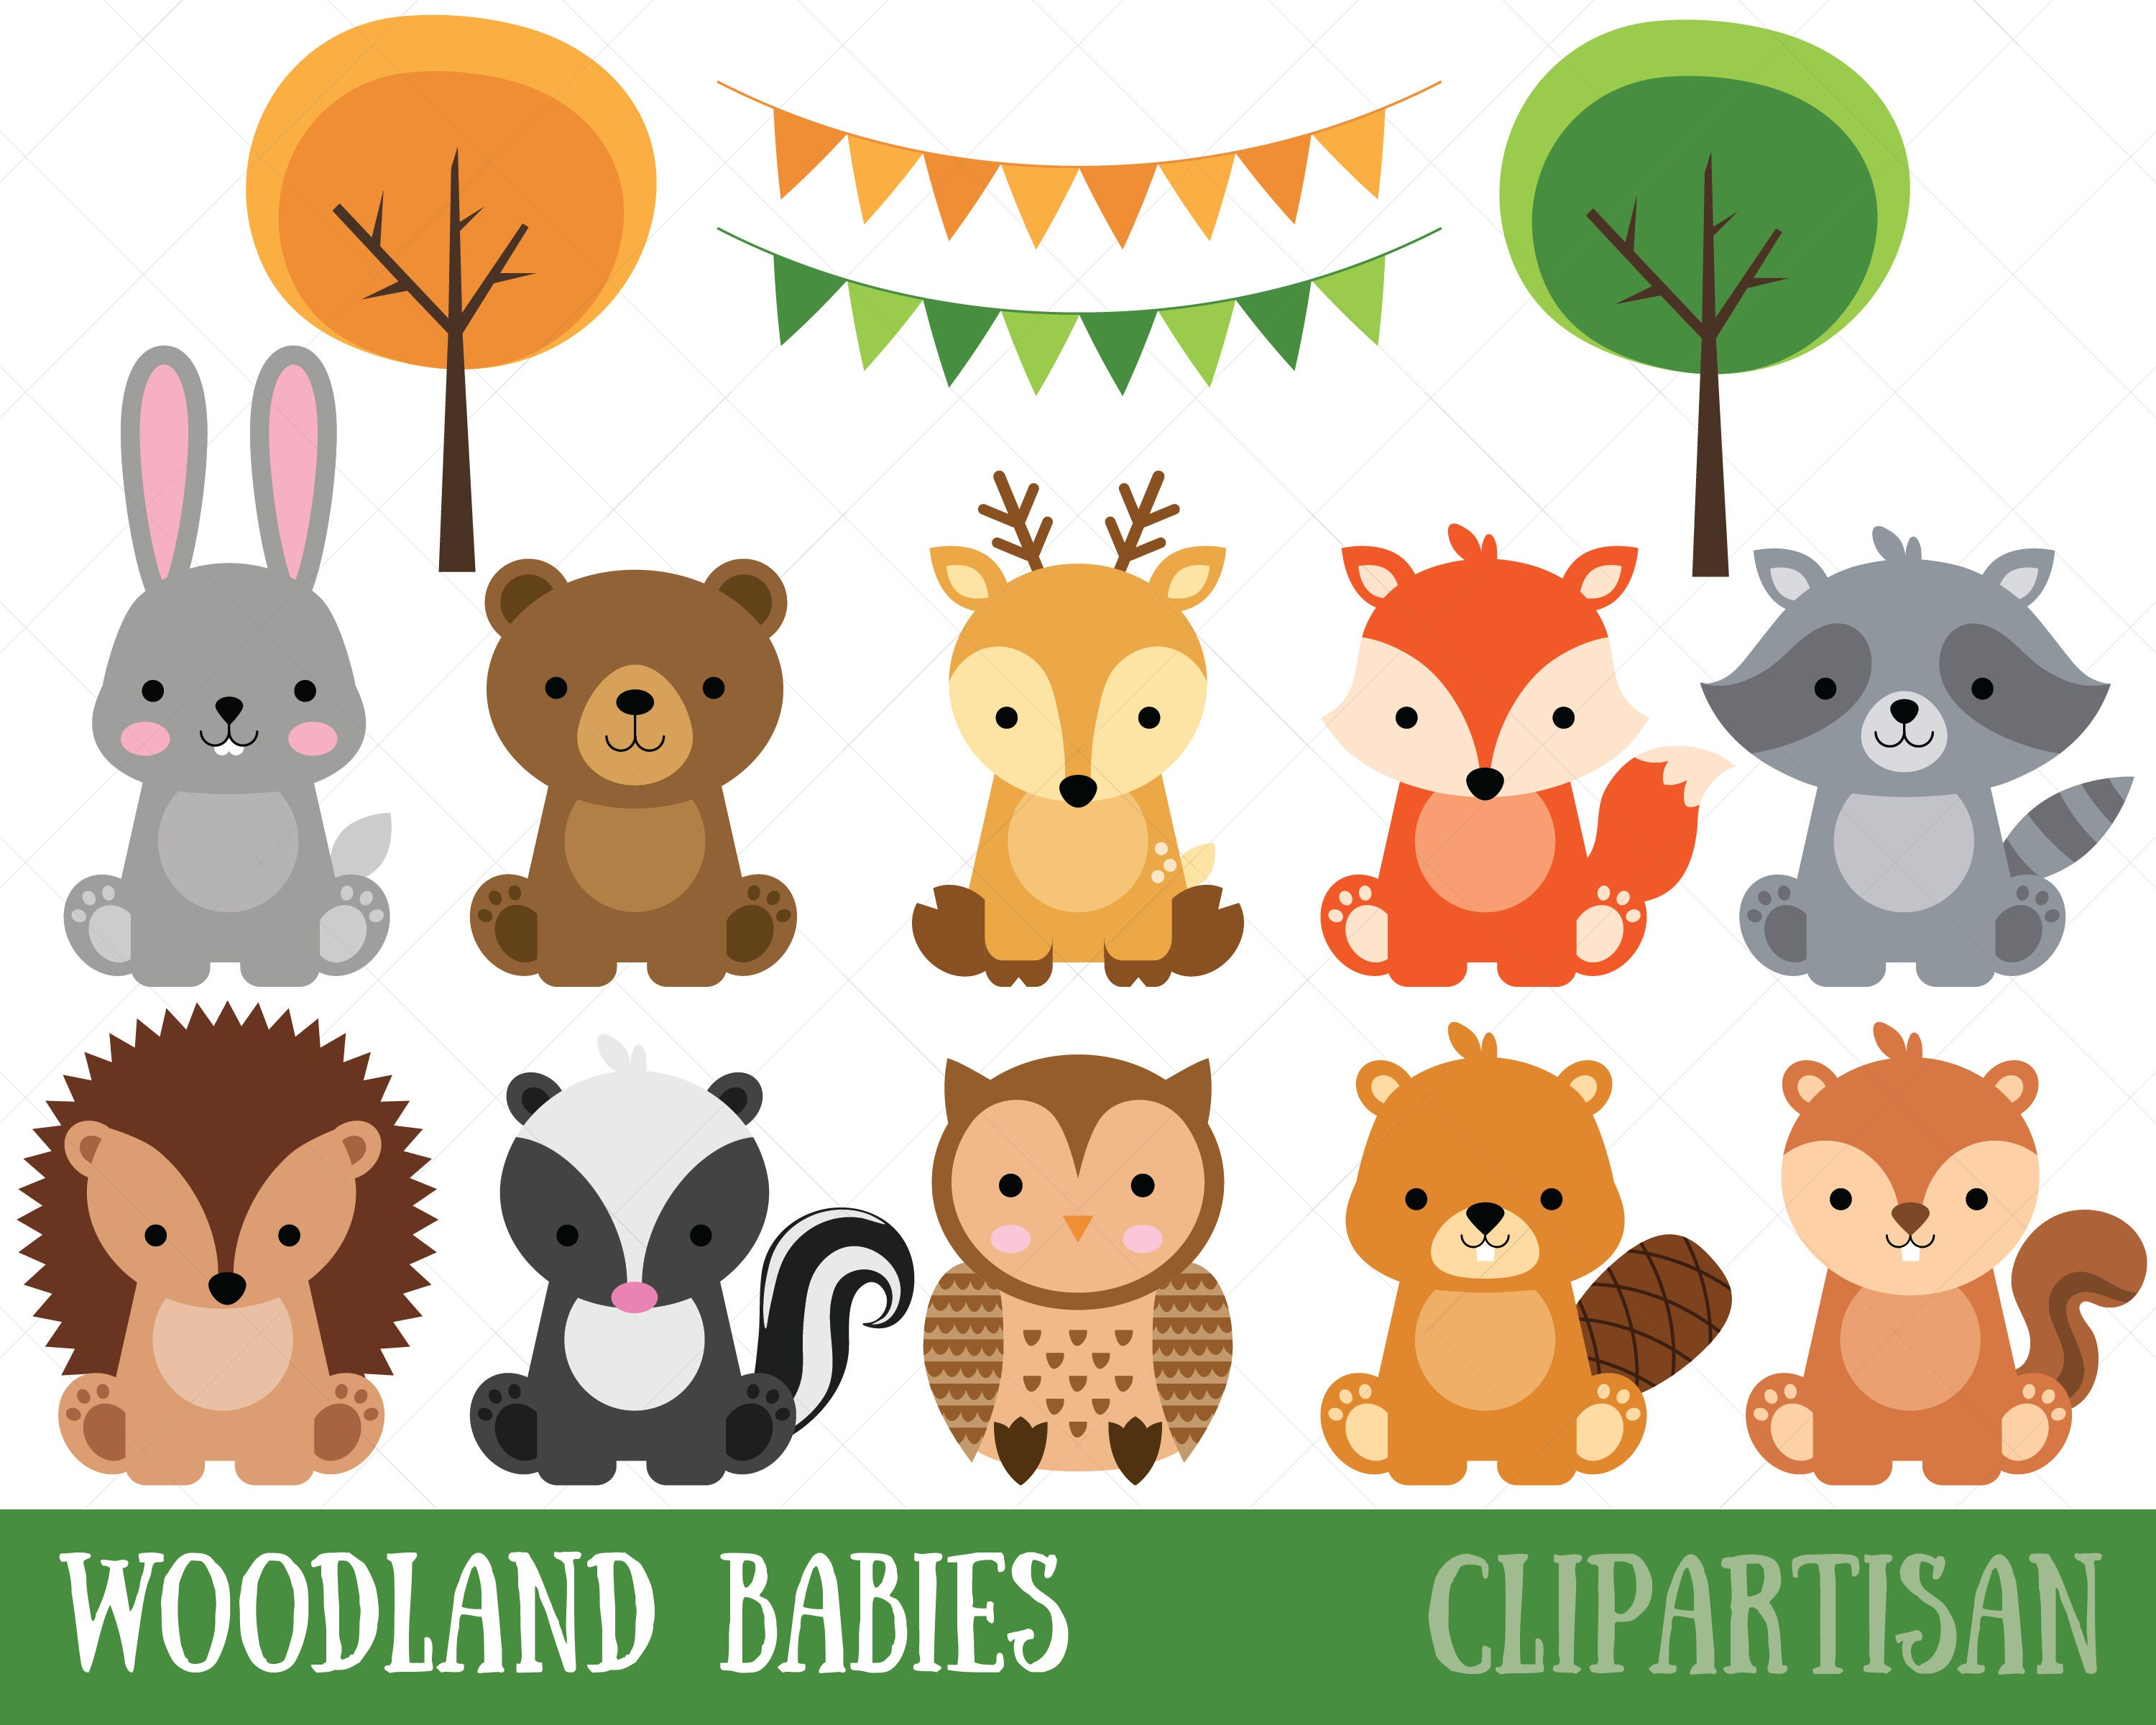 Woodland Baby Animals Clipart | Forest Animal Clipart | Woodland Baby Shower  Printable From ClipArtisan On Etsy Studio